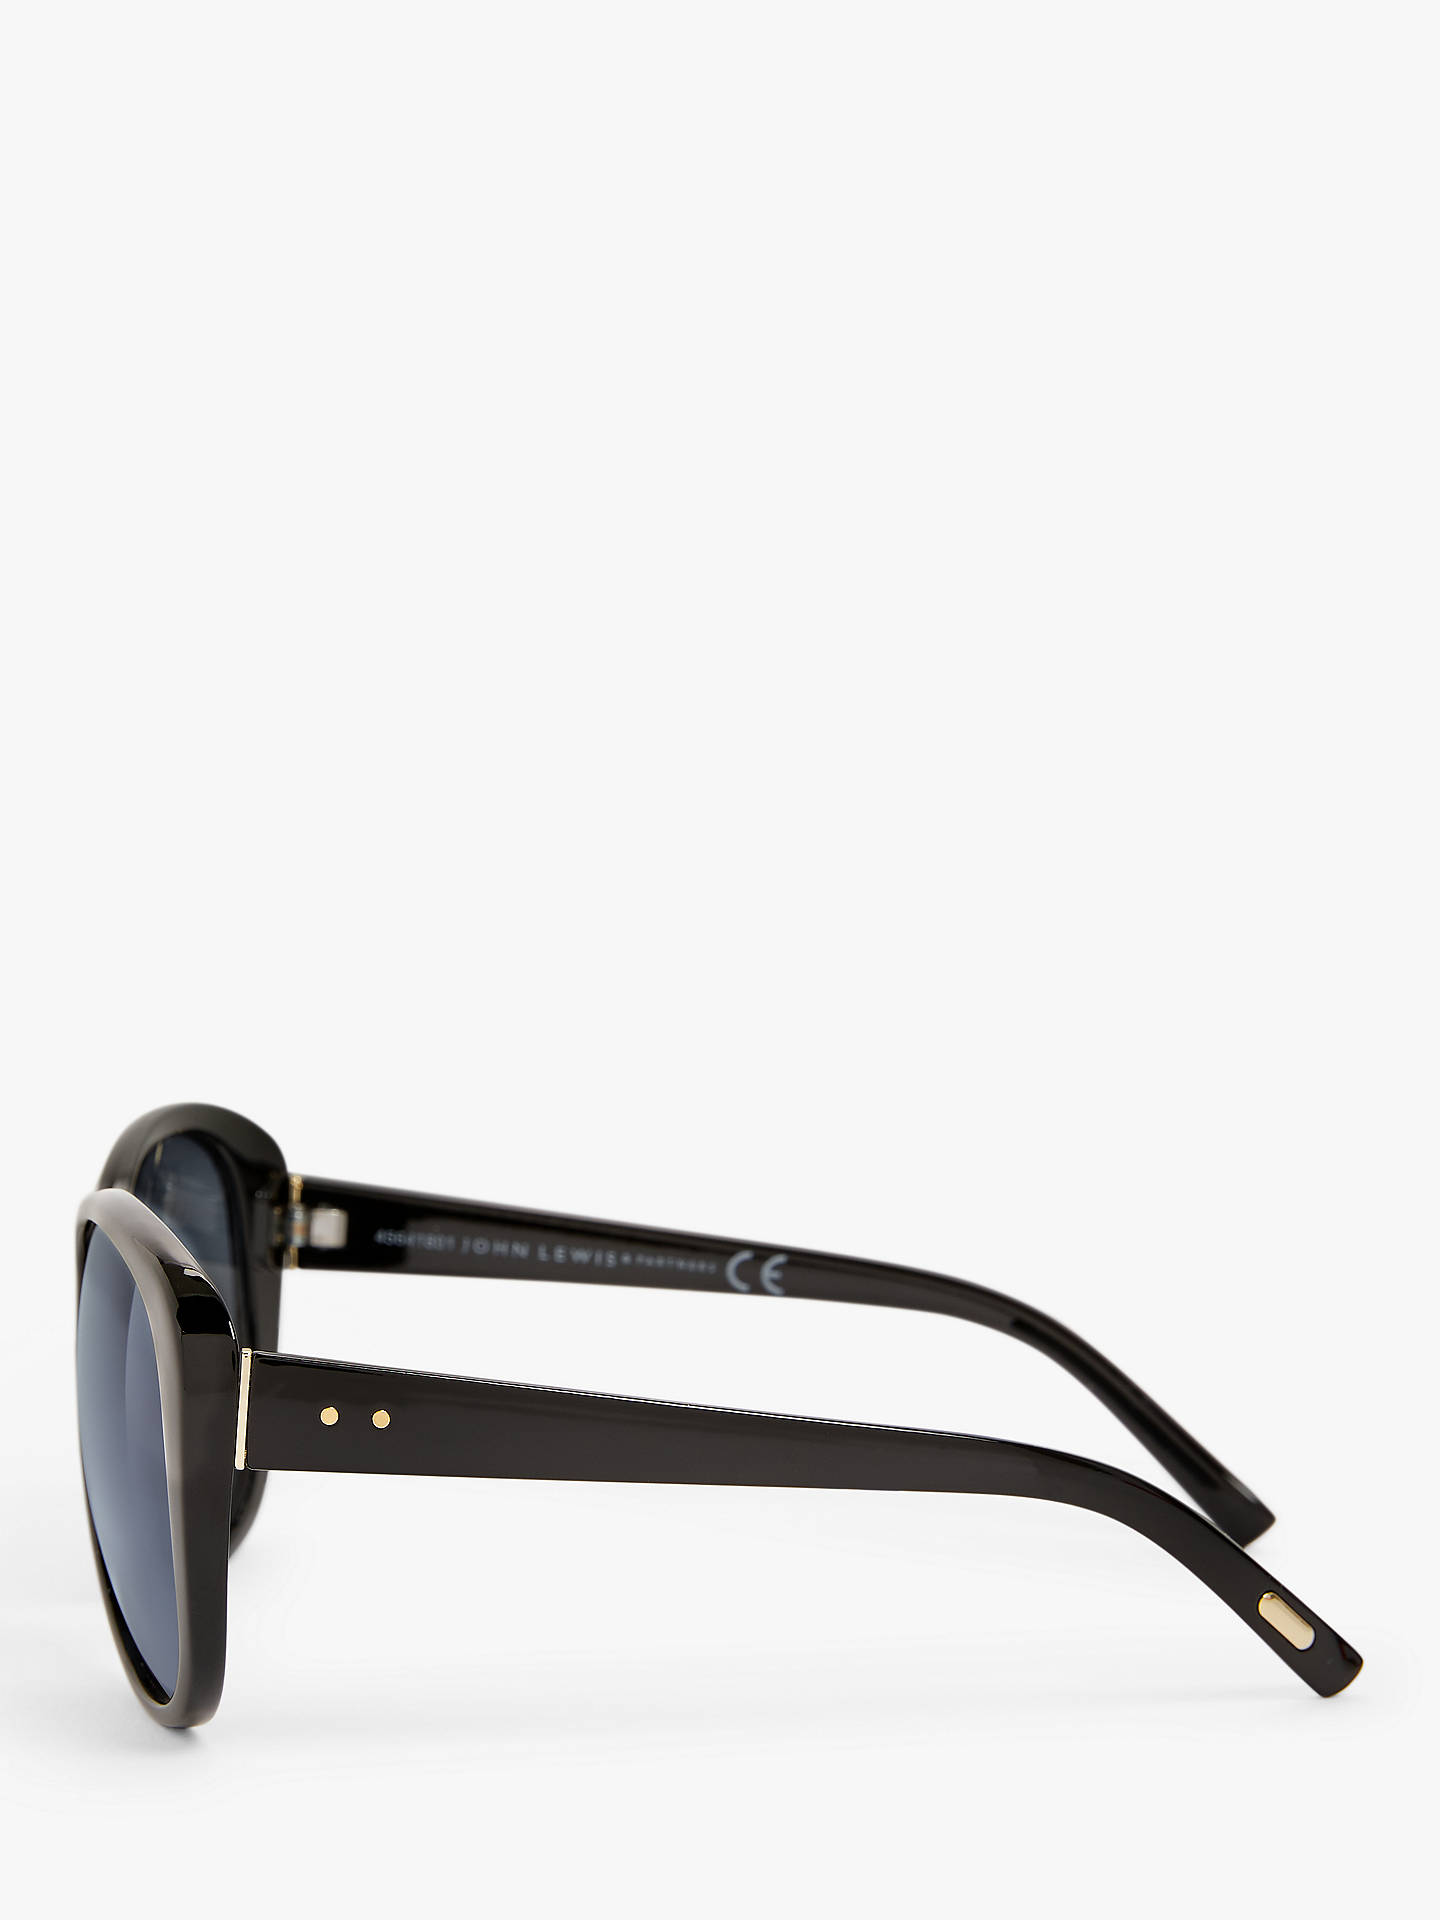 Buy John Lewis & Partners Women's Gold Trim Square Sunglasses, Black/Blue Online at johnlewis.com